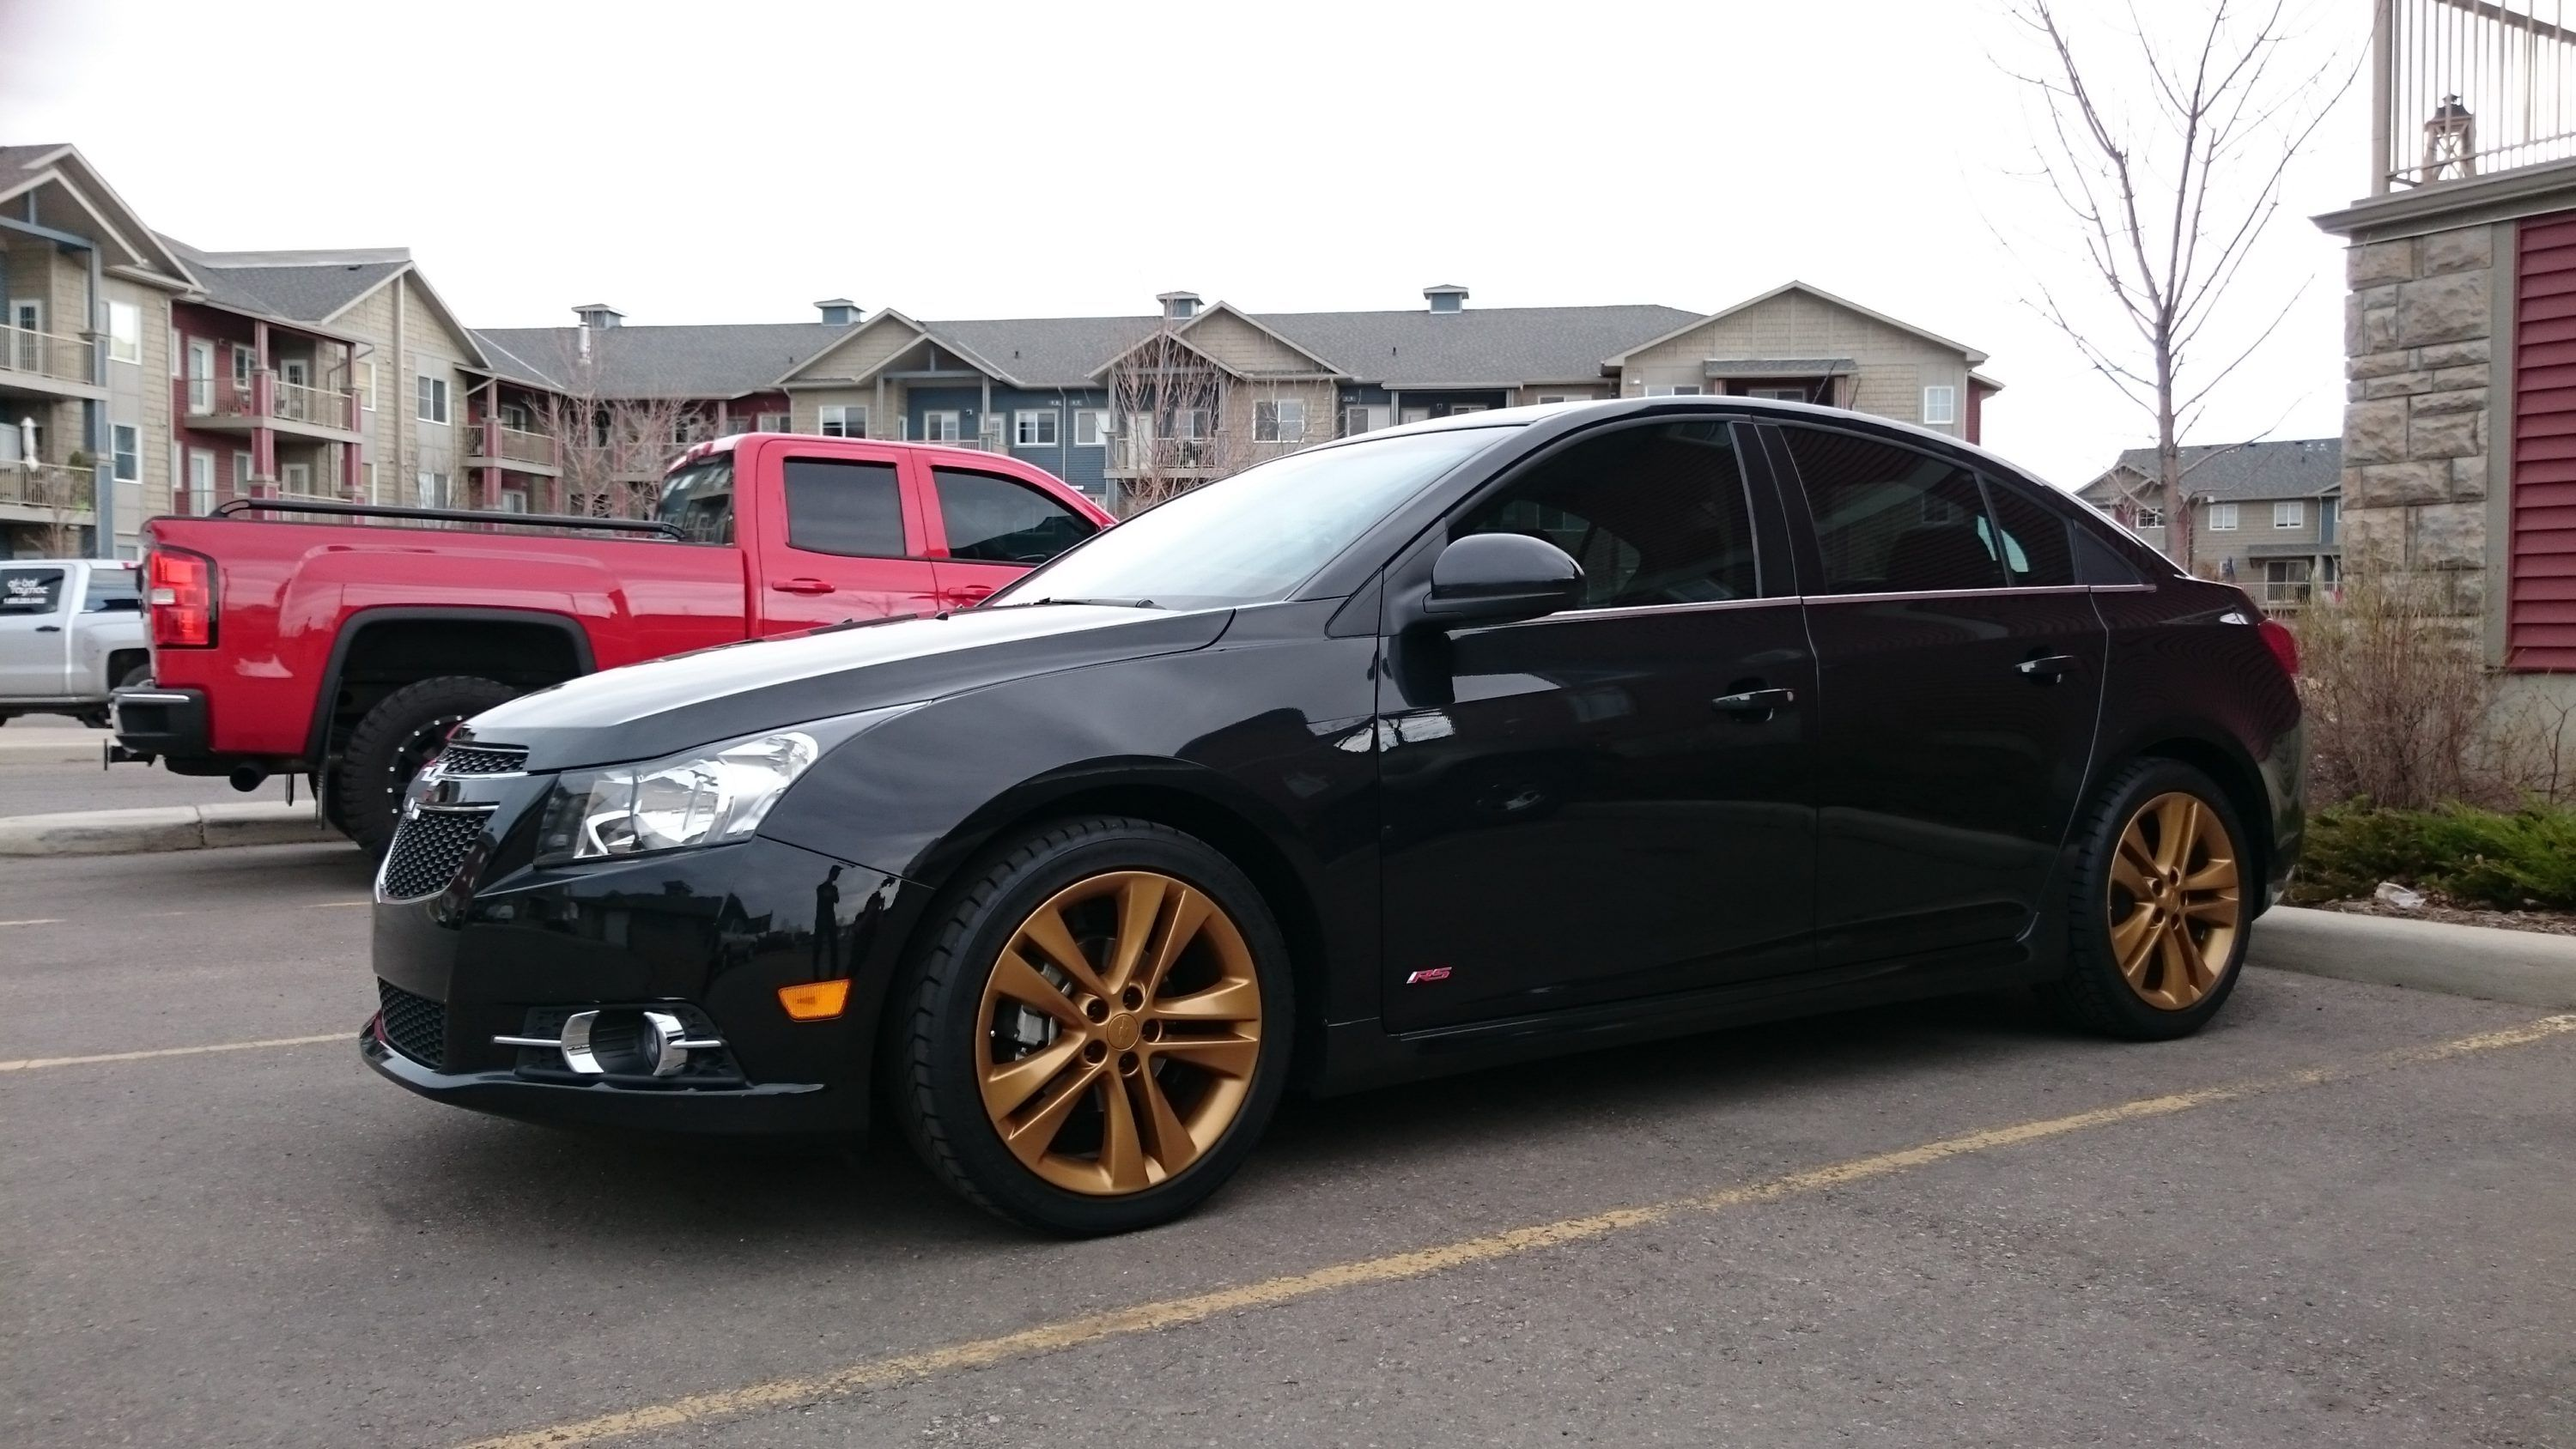 Chevy cruze chevy cruze pinterest chevy chevrolet cruze and cars